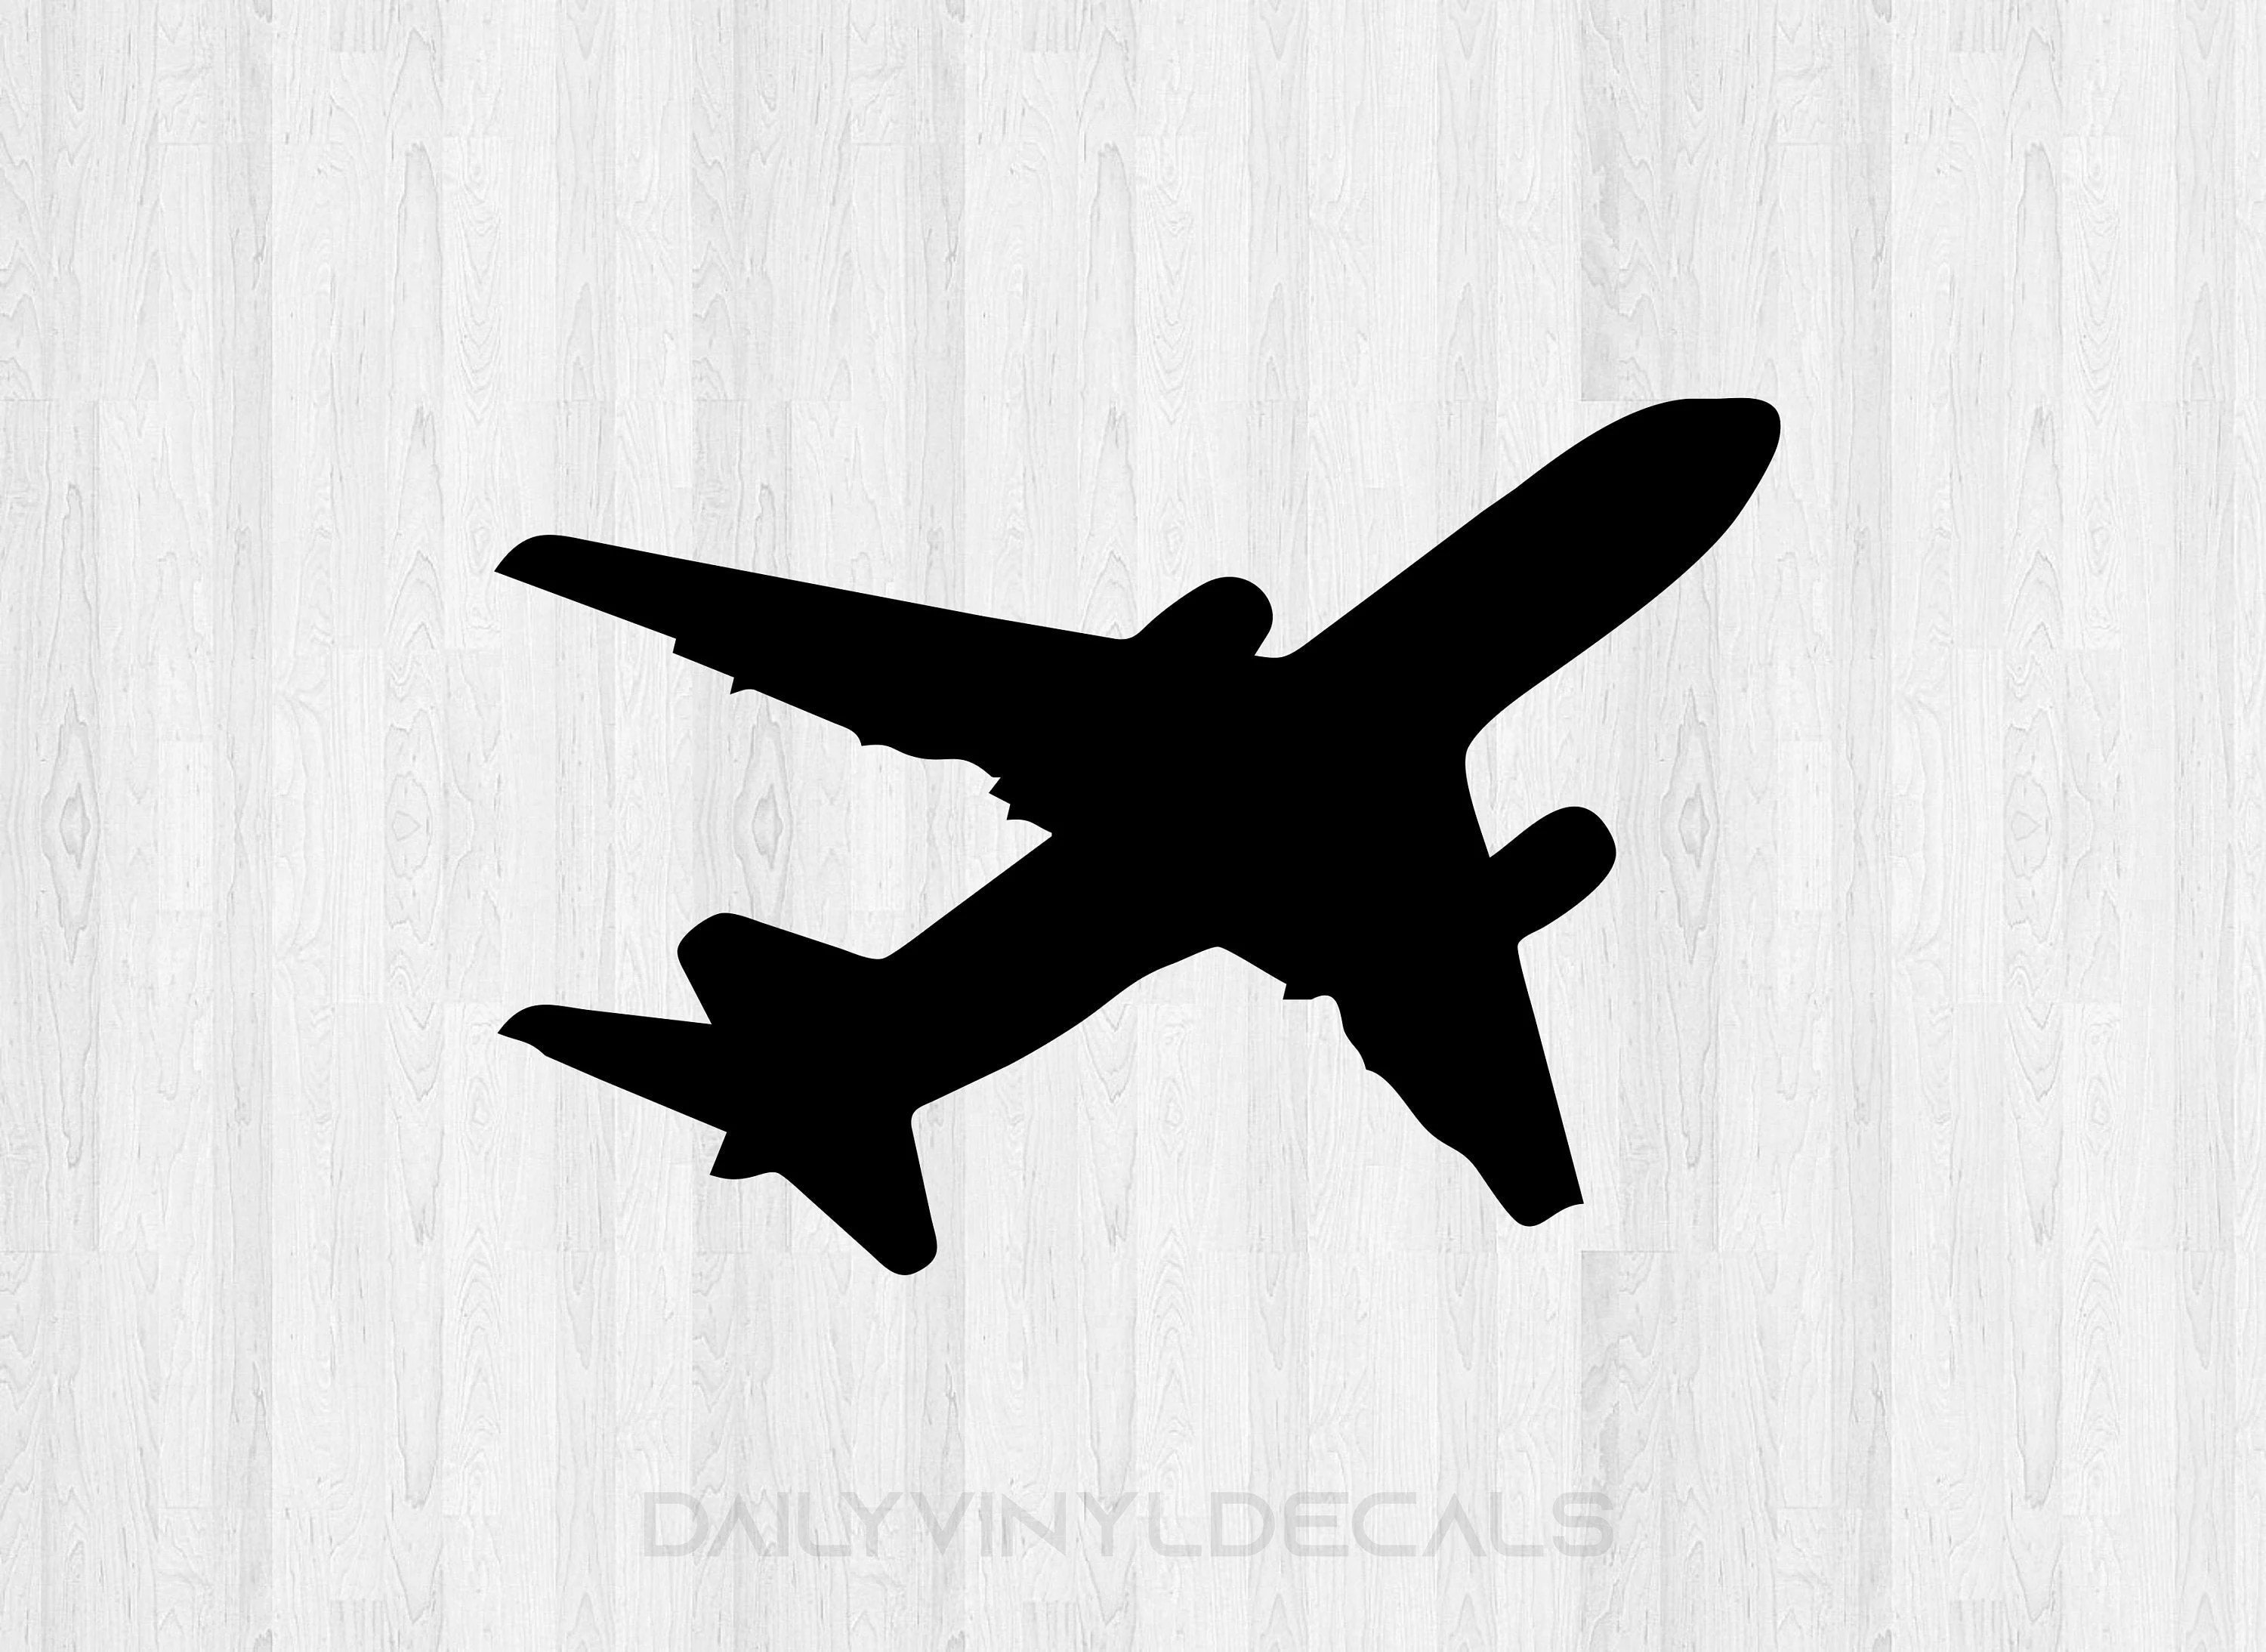 Commercial Airplane Decal Airplane Sticker